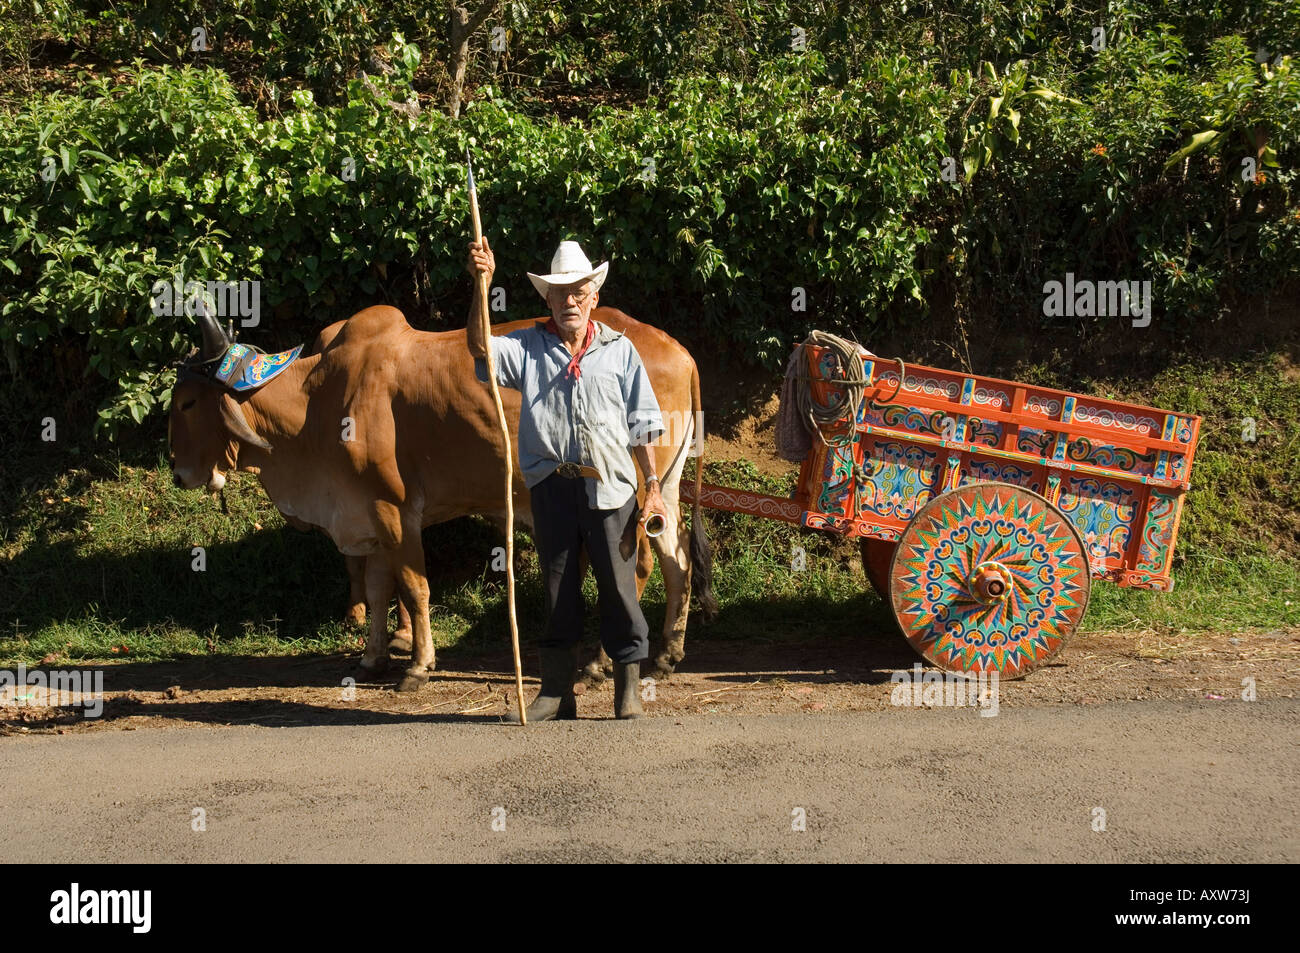 Man with decortated ox cart, Central Highlands, Costa Rica - Stock Image